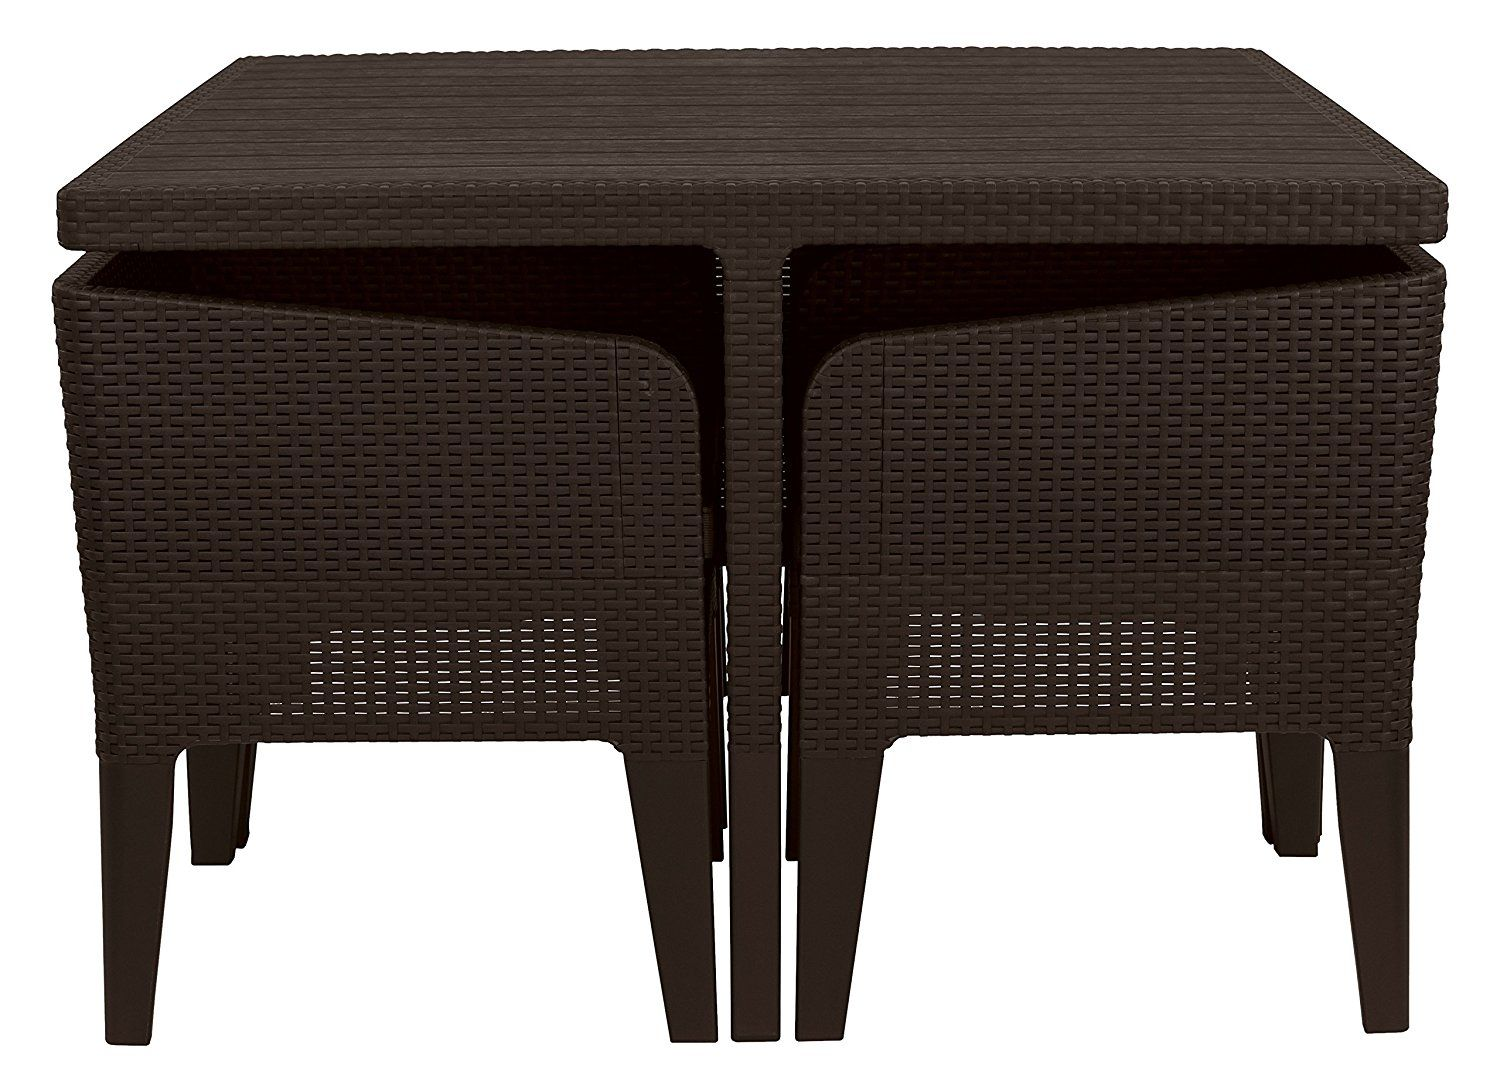 20+ Keter dining table and chairs Best